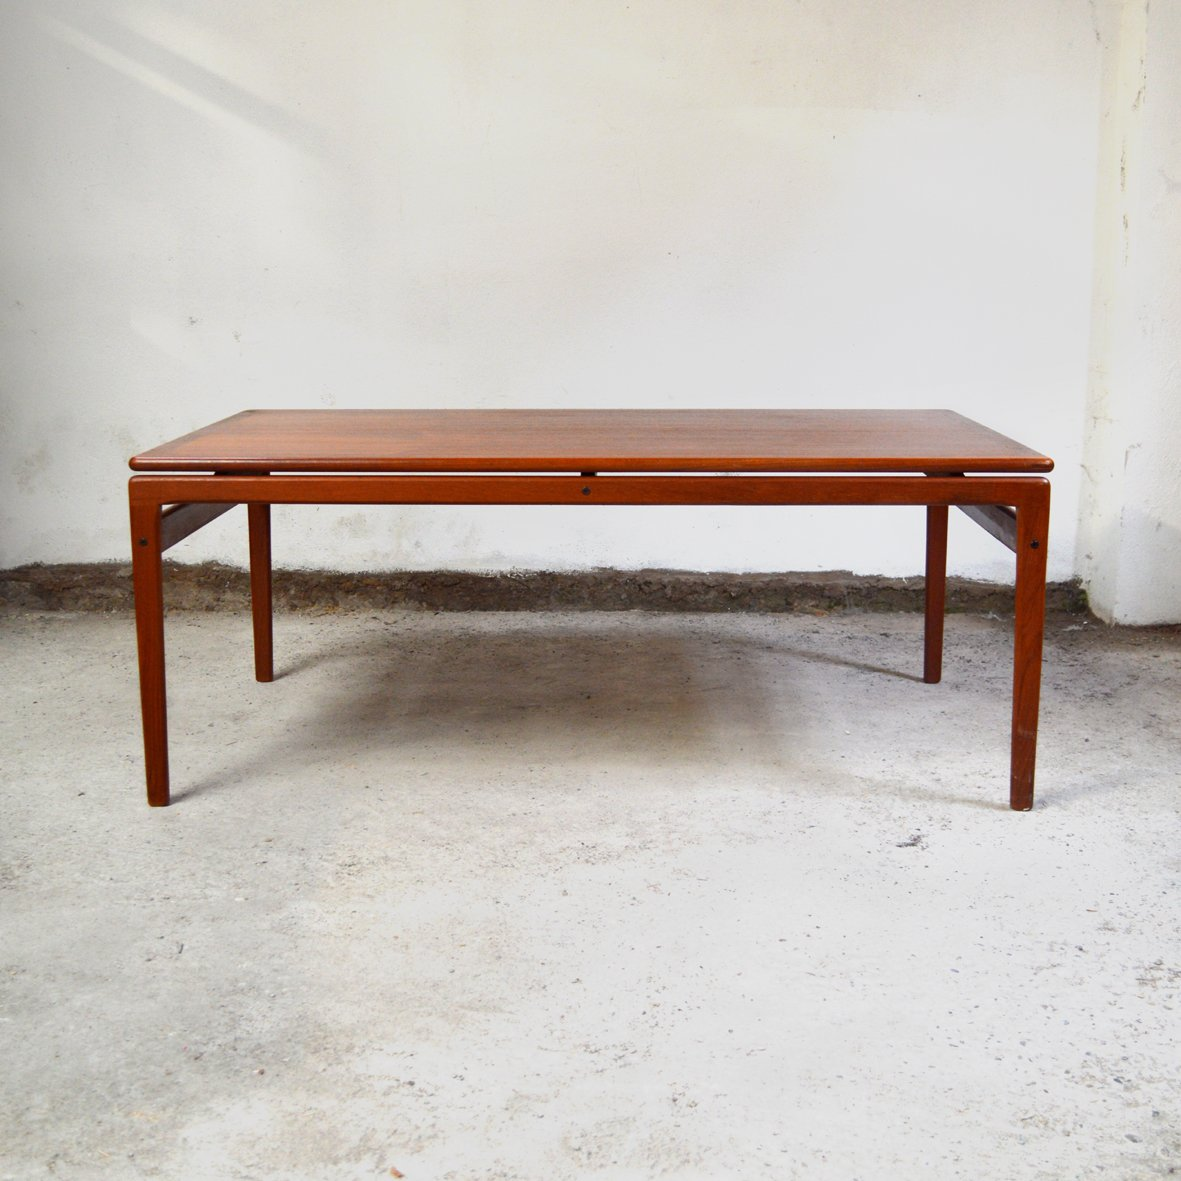 Scandinavian Teak Coffee Table: Danish Teak Coffee Table From Trioh, 1970s For Sale At Pamono